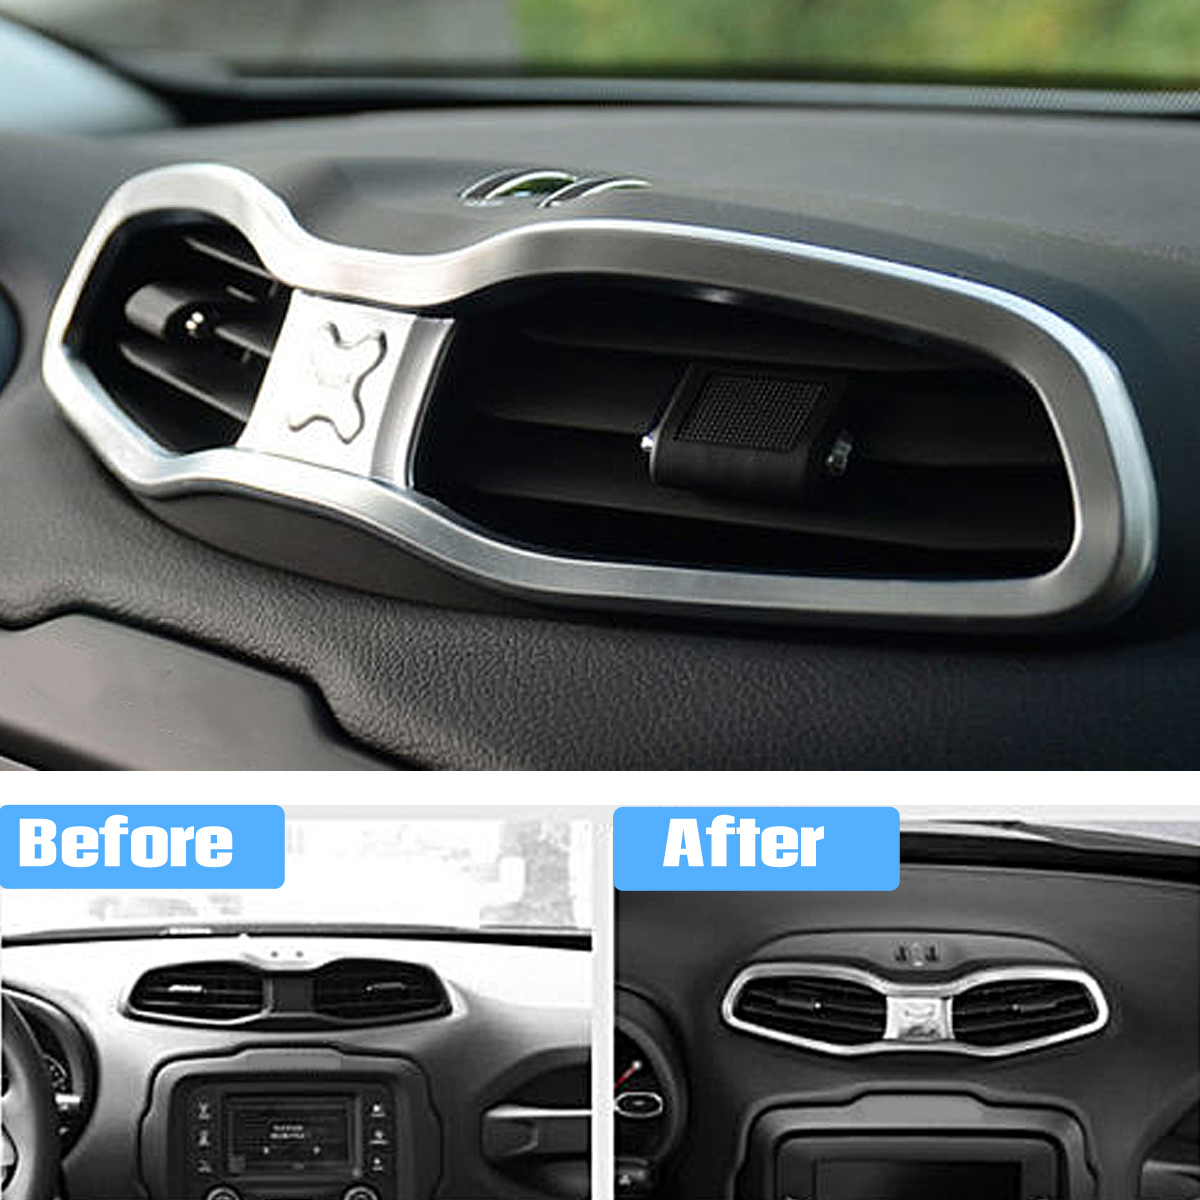 ABS Auto Car Air Outlet Frame Cover Trim Chrome Moulding Trim Strip for Jeep Renegade 2015+